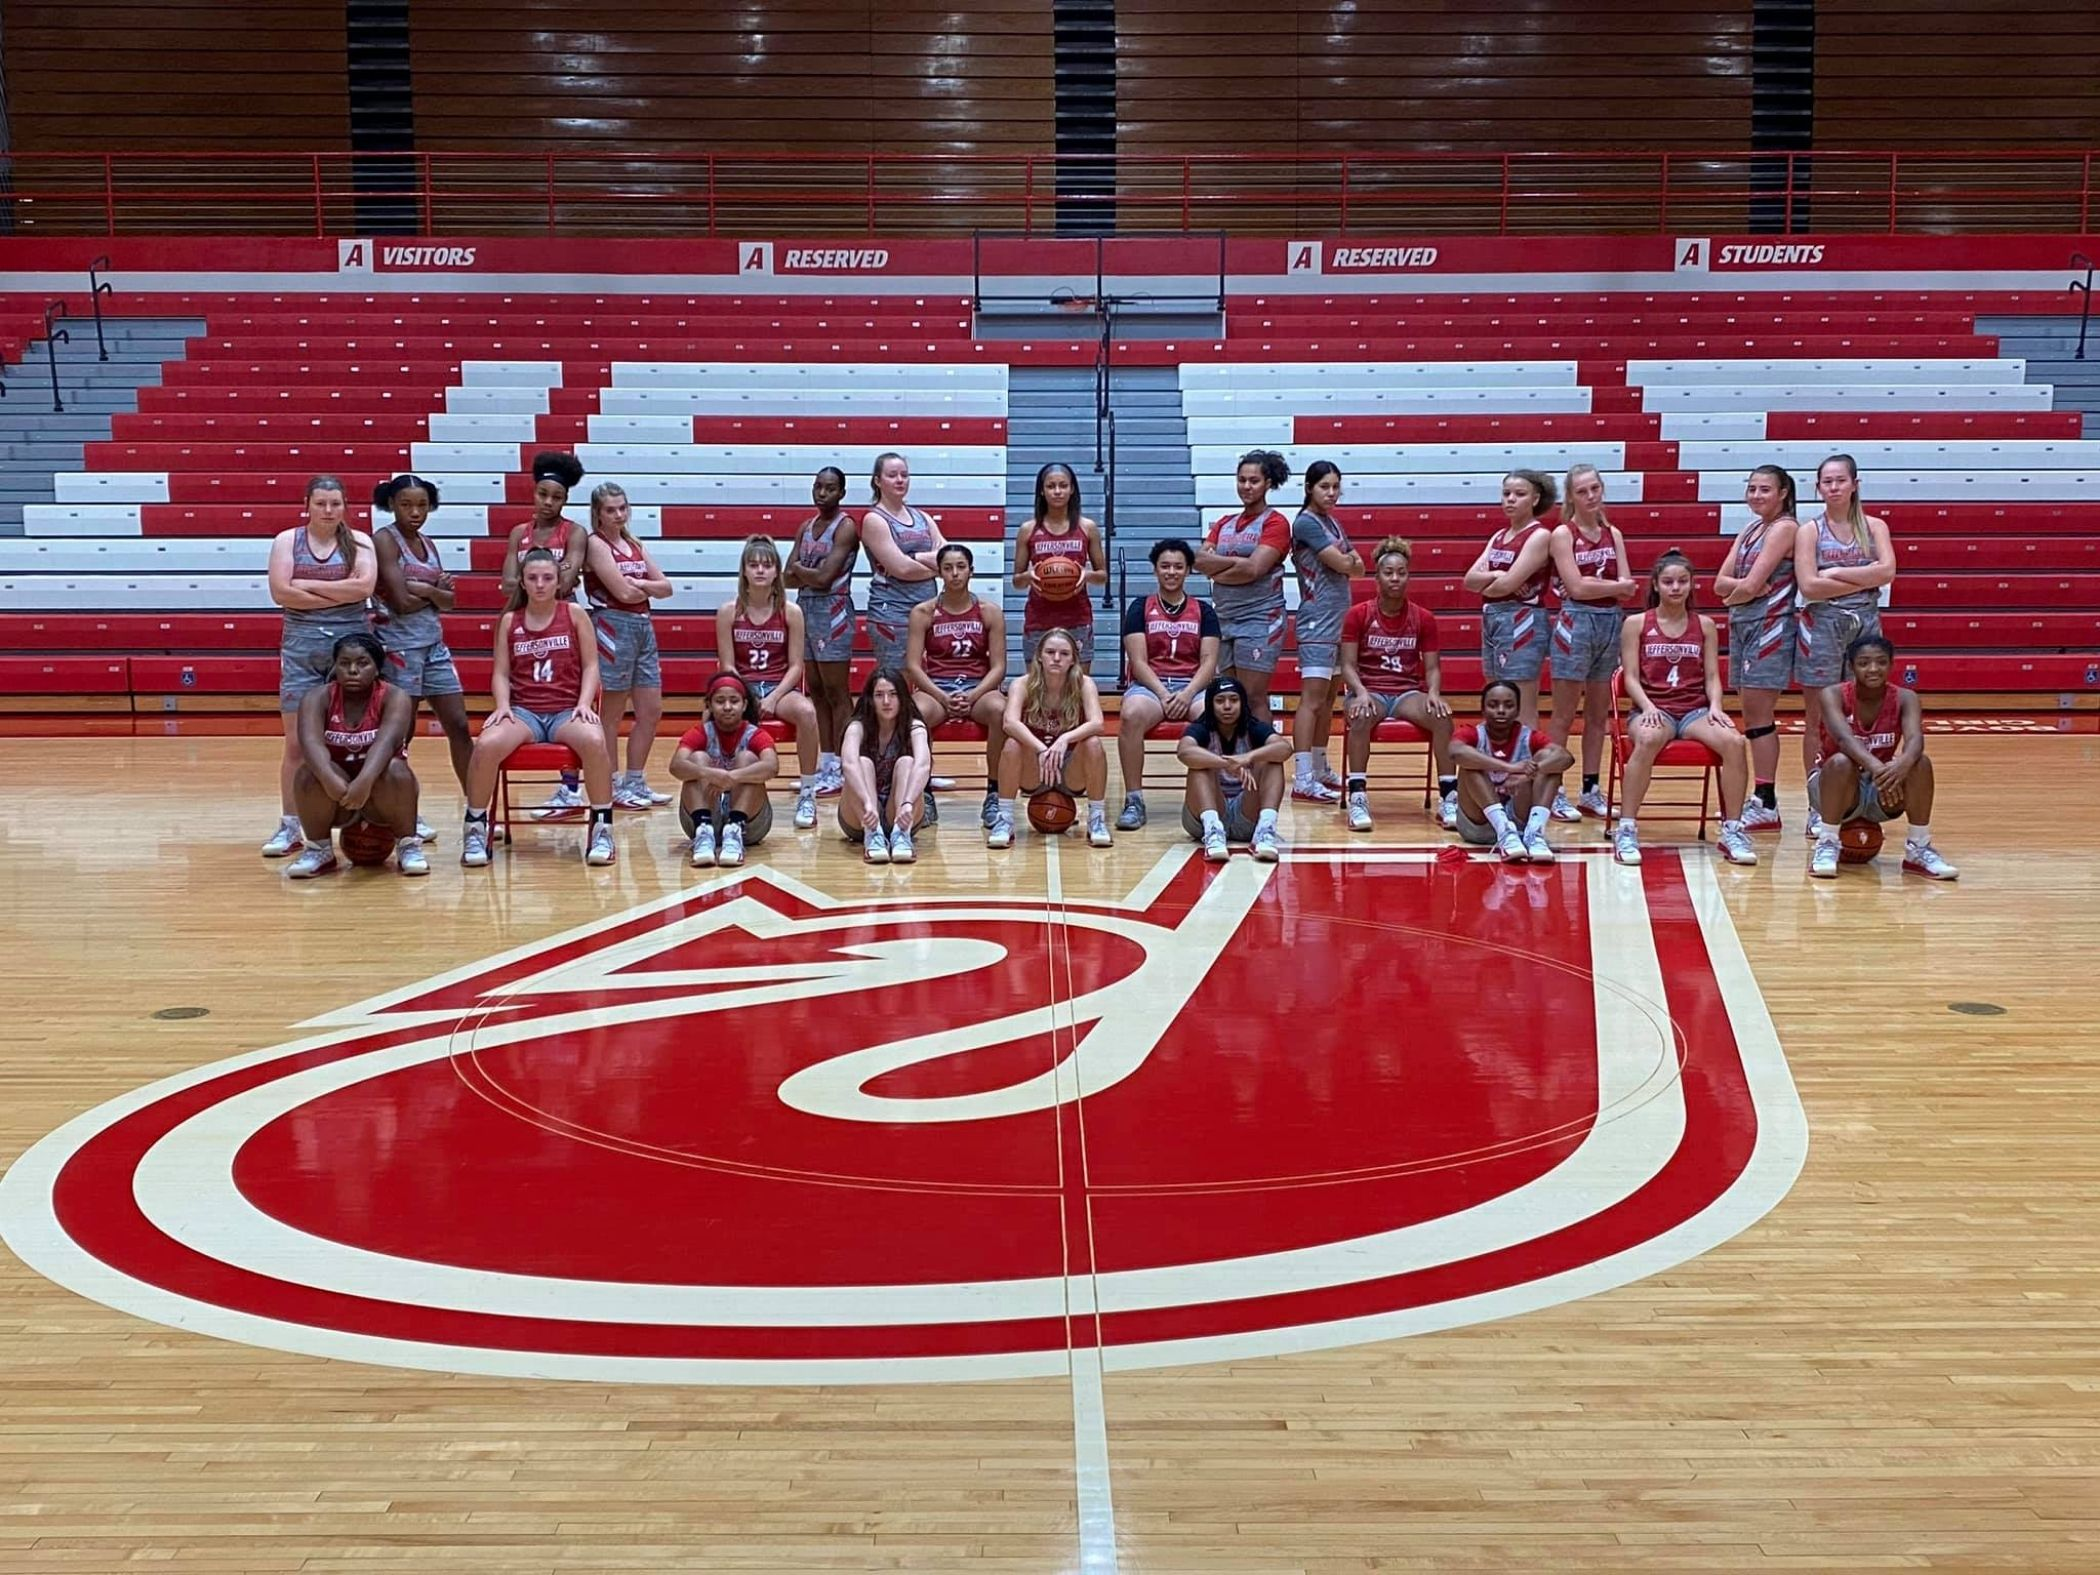 JHS girls basketball team posing for a team picture